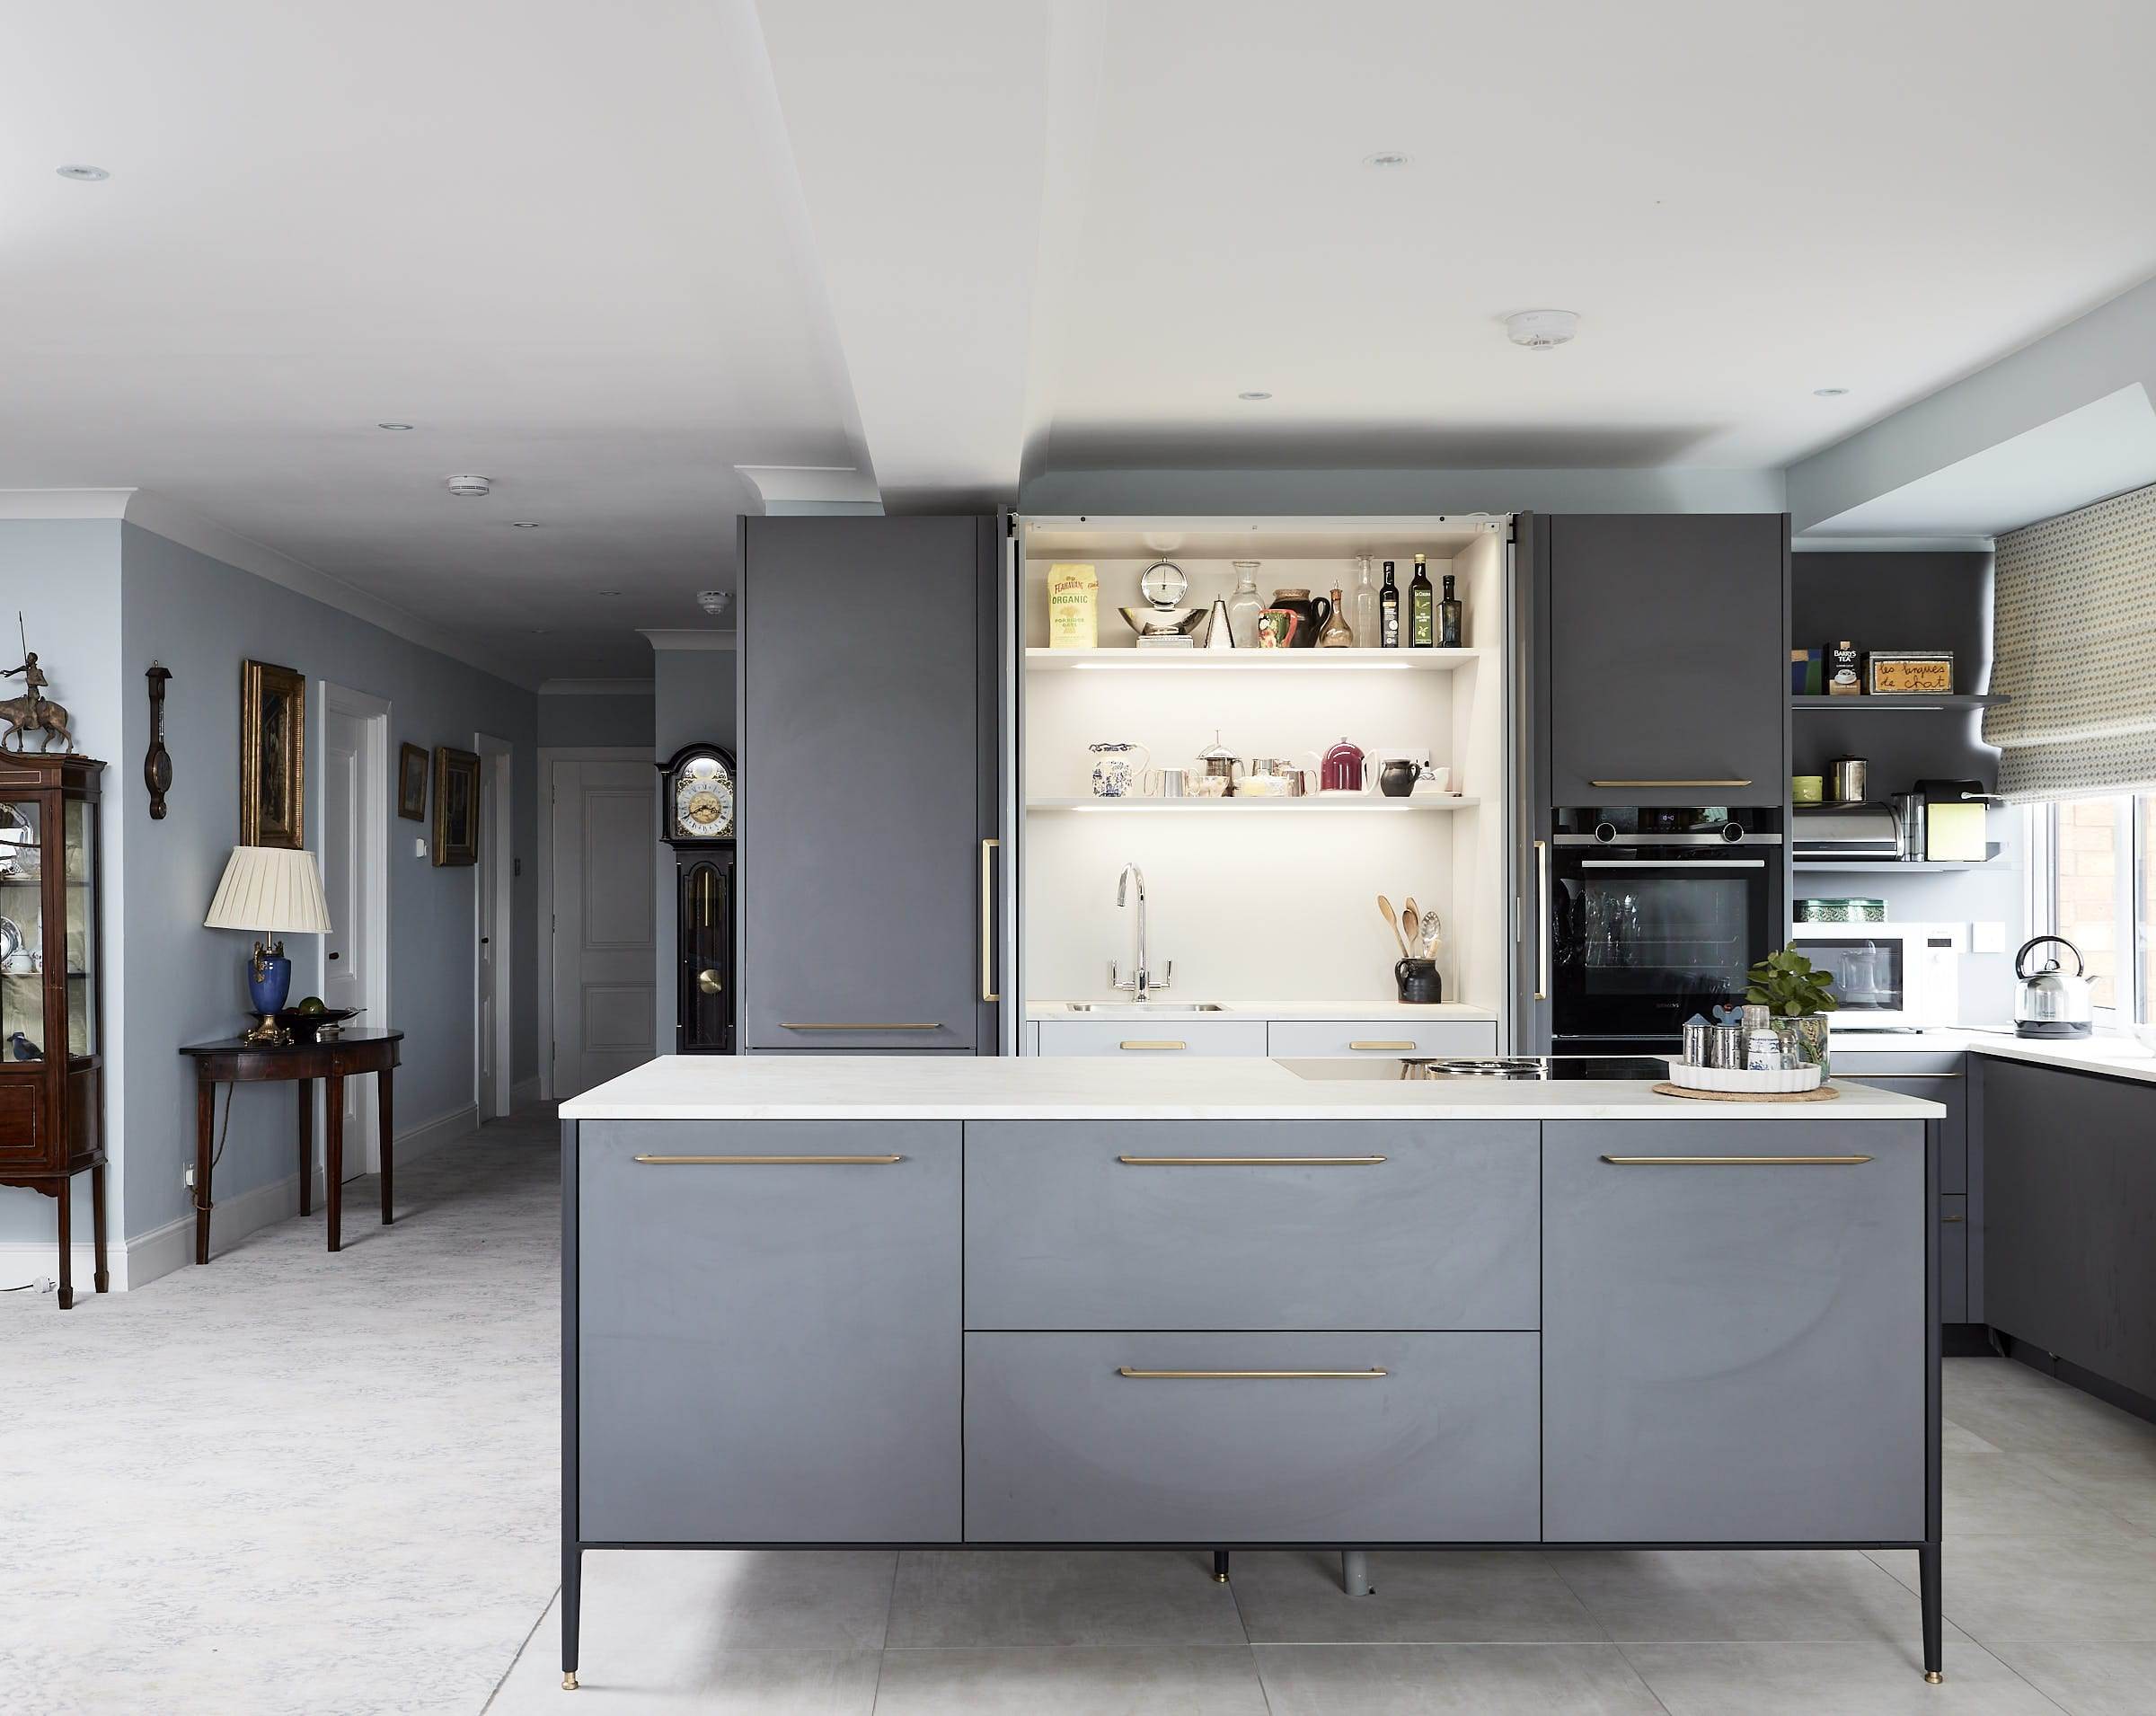 Interior design Dublin. The kitchen had to be installed in the centre of the living space to the kitchen was designed So that the entire working kitchen could be closed off when not in use.